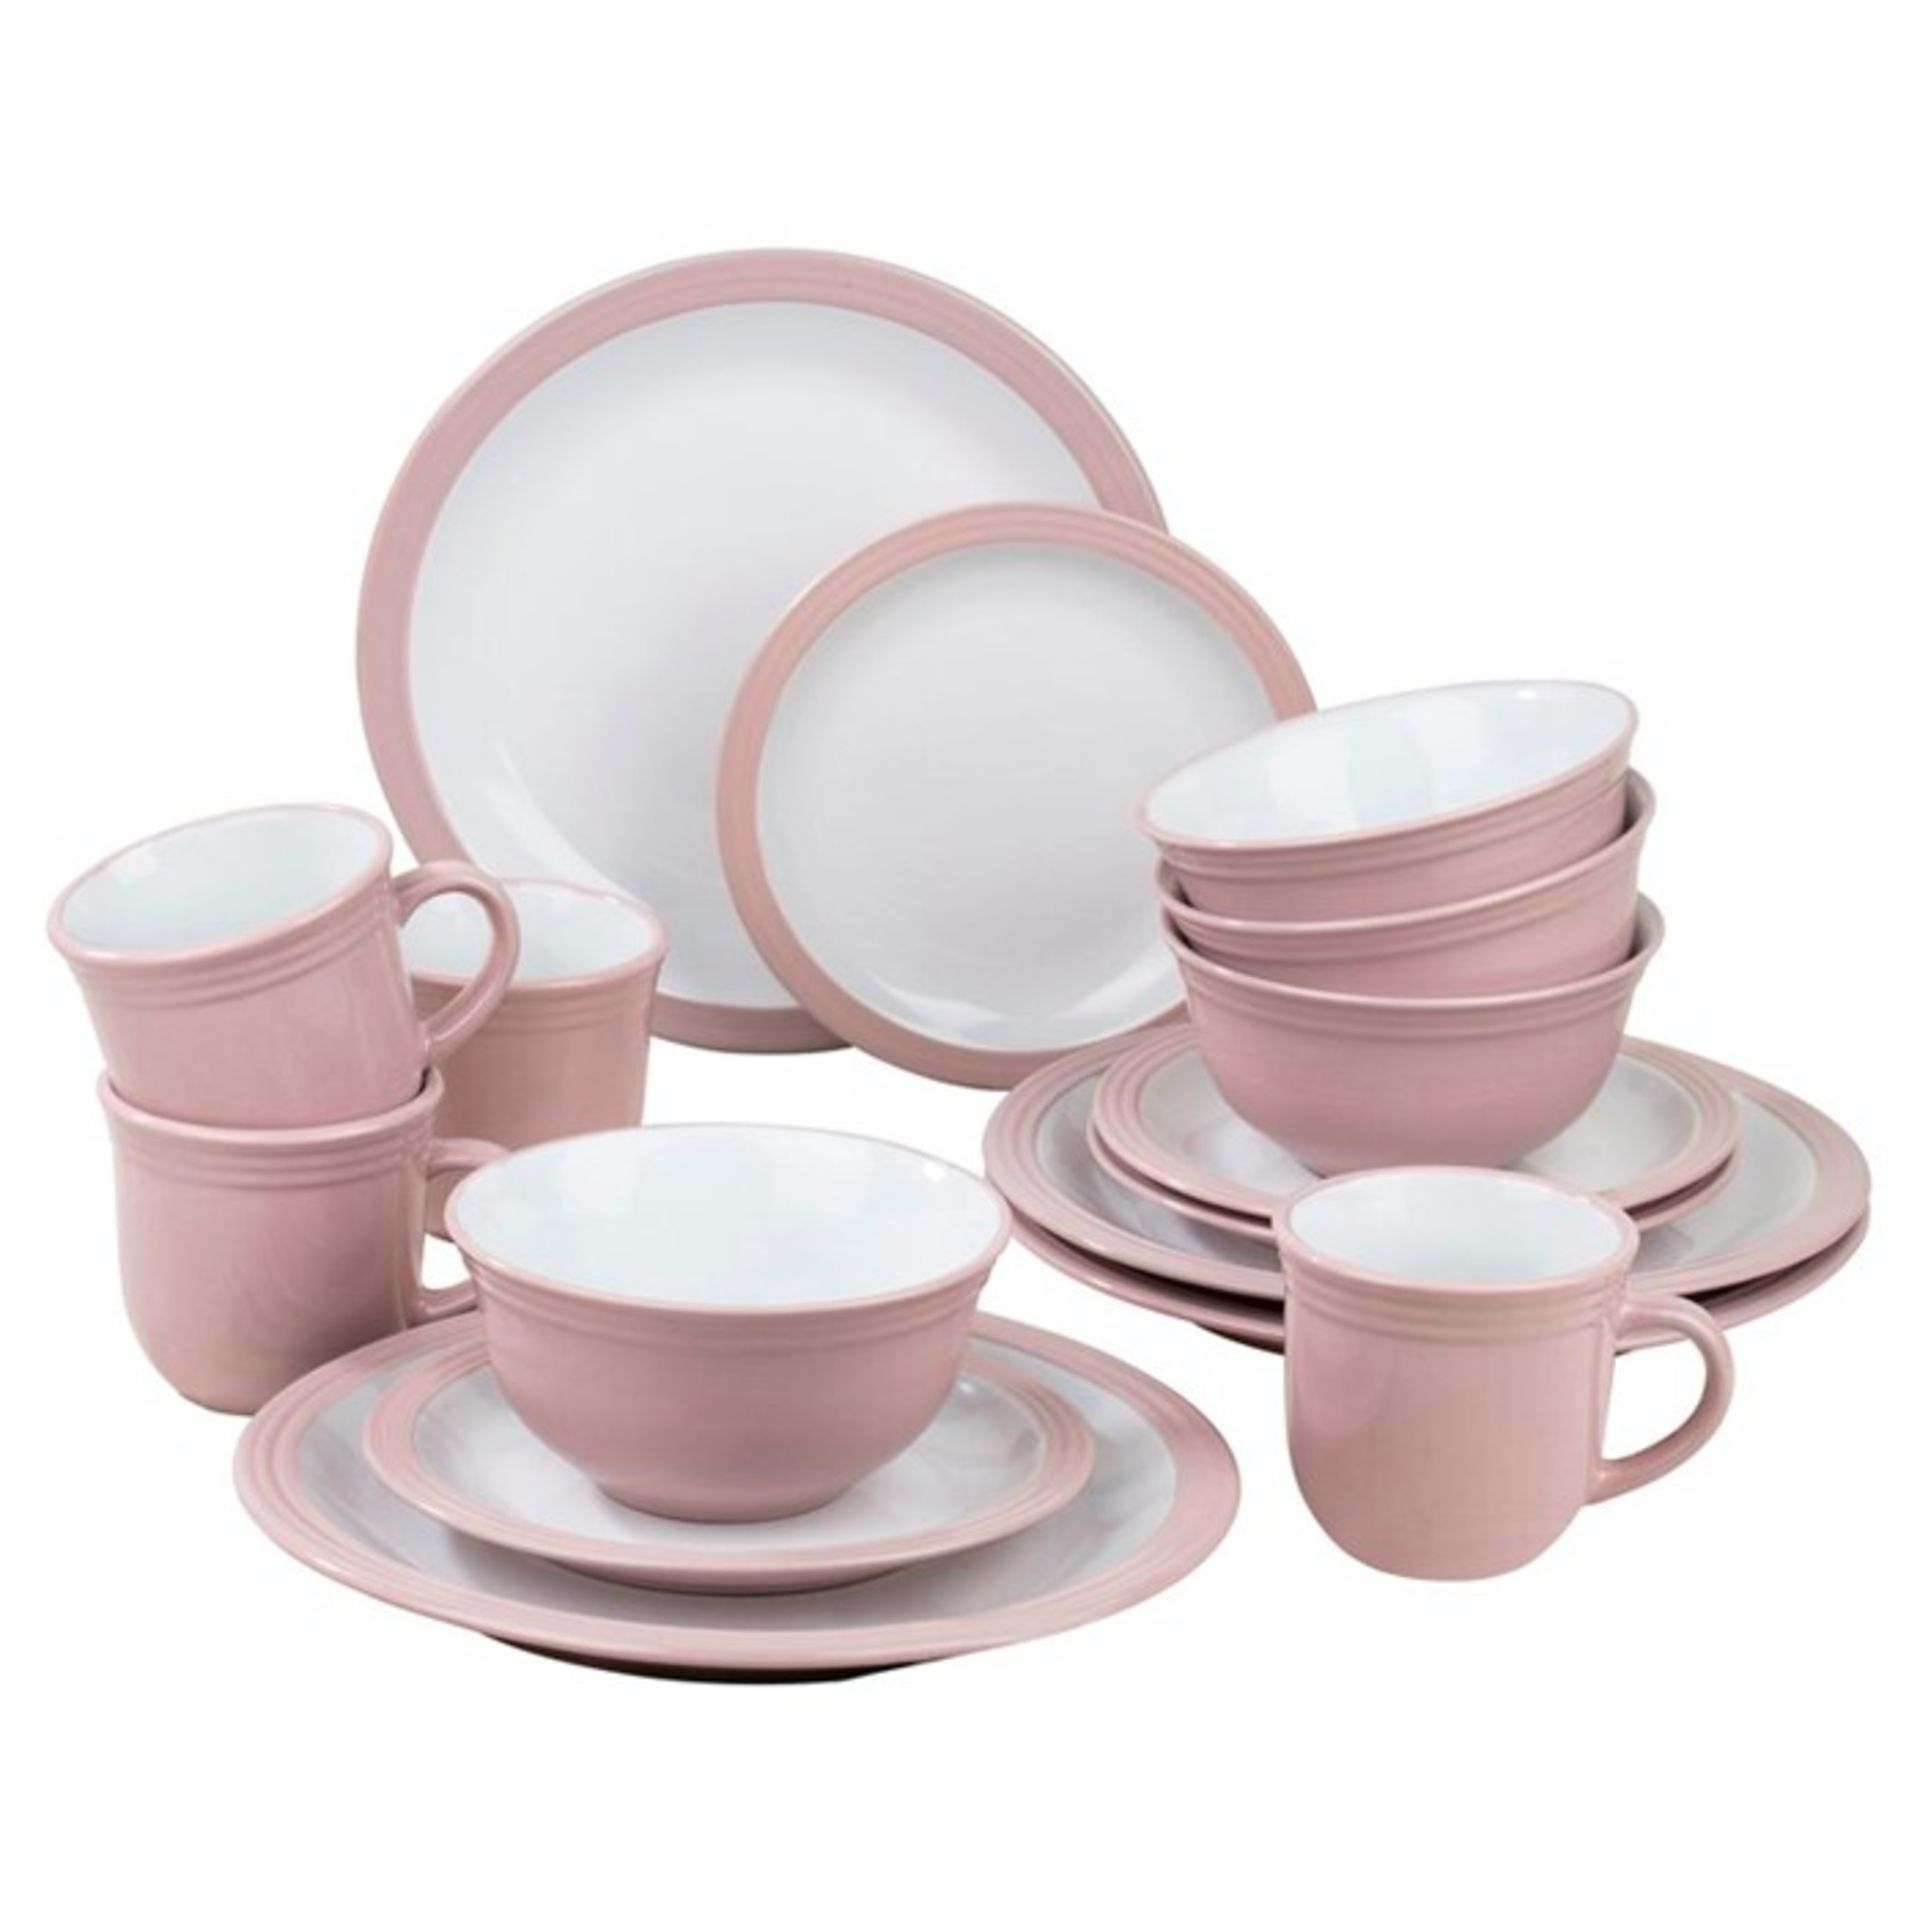 Three Posts, Helene 16 Piece Dinnerware Set, Service for 4 (PINK & WHITE) - RRP£33.99 (HJE10000 -